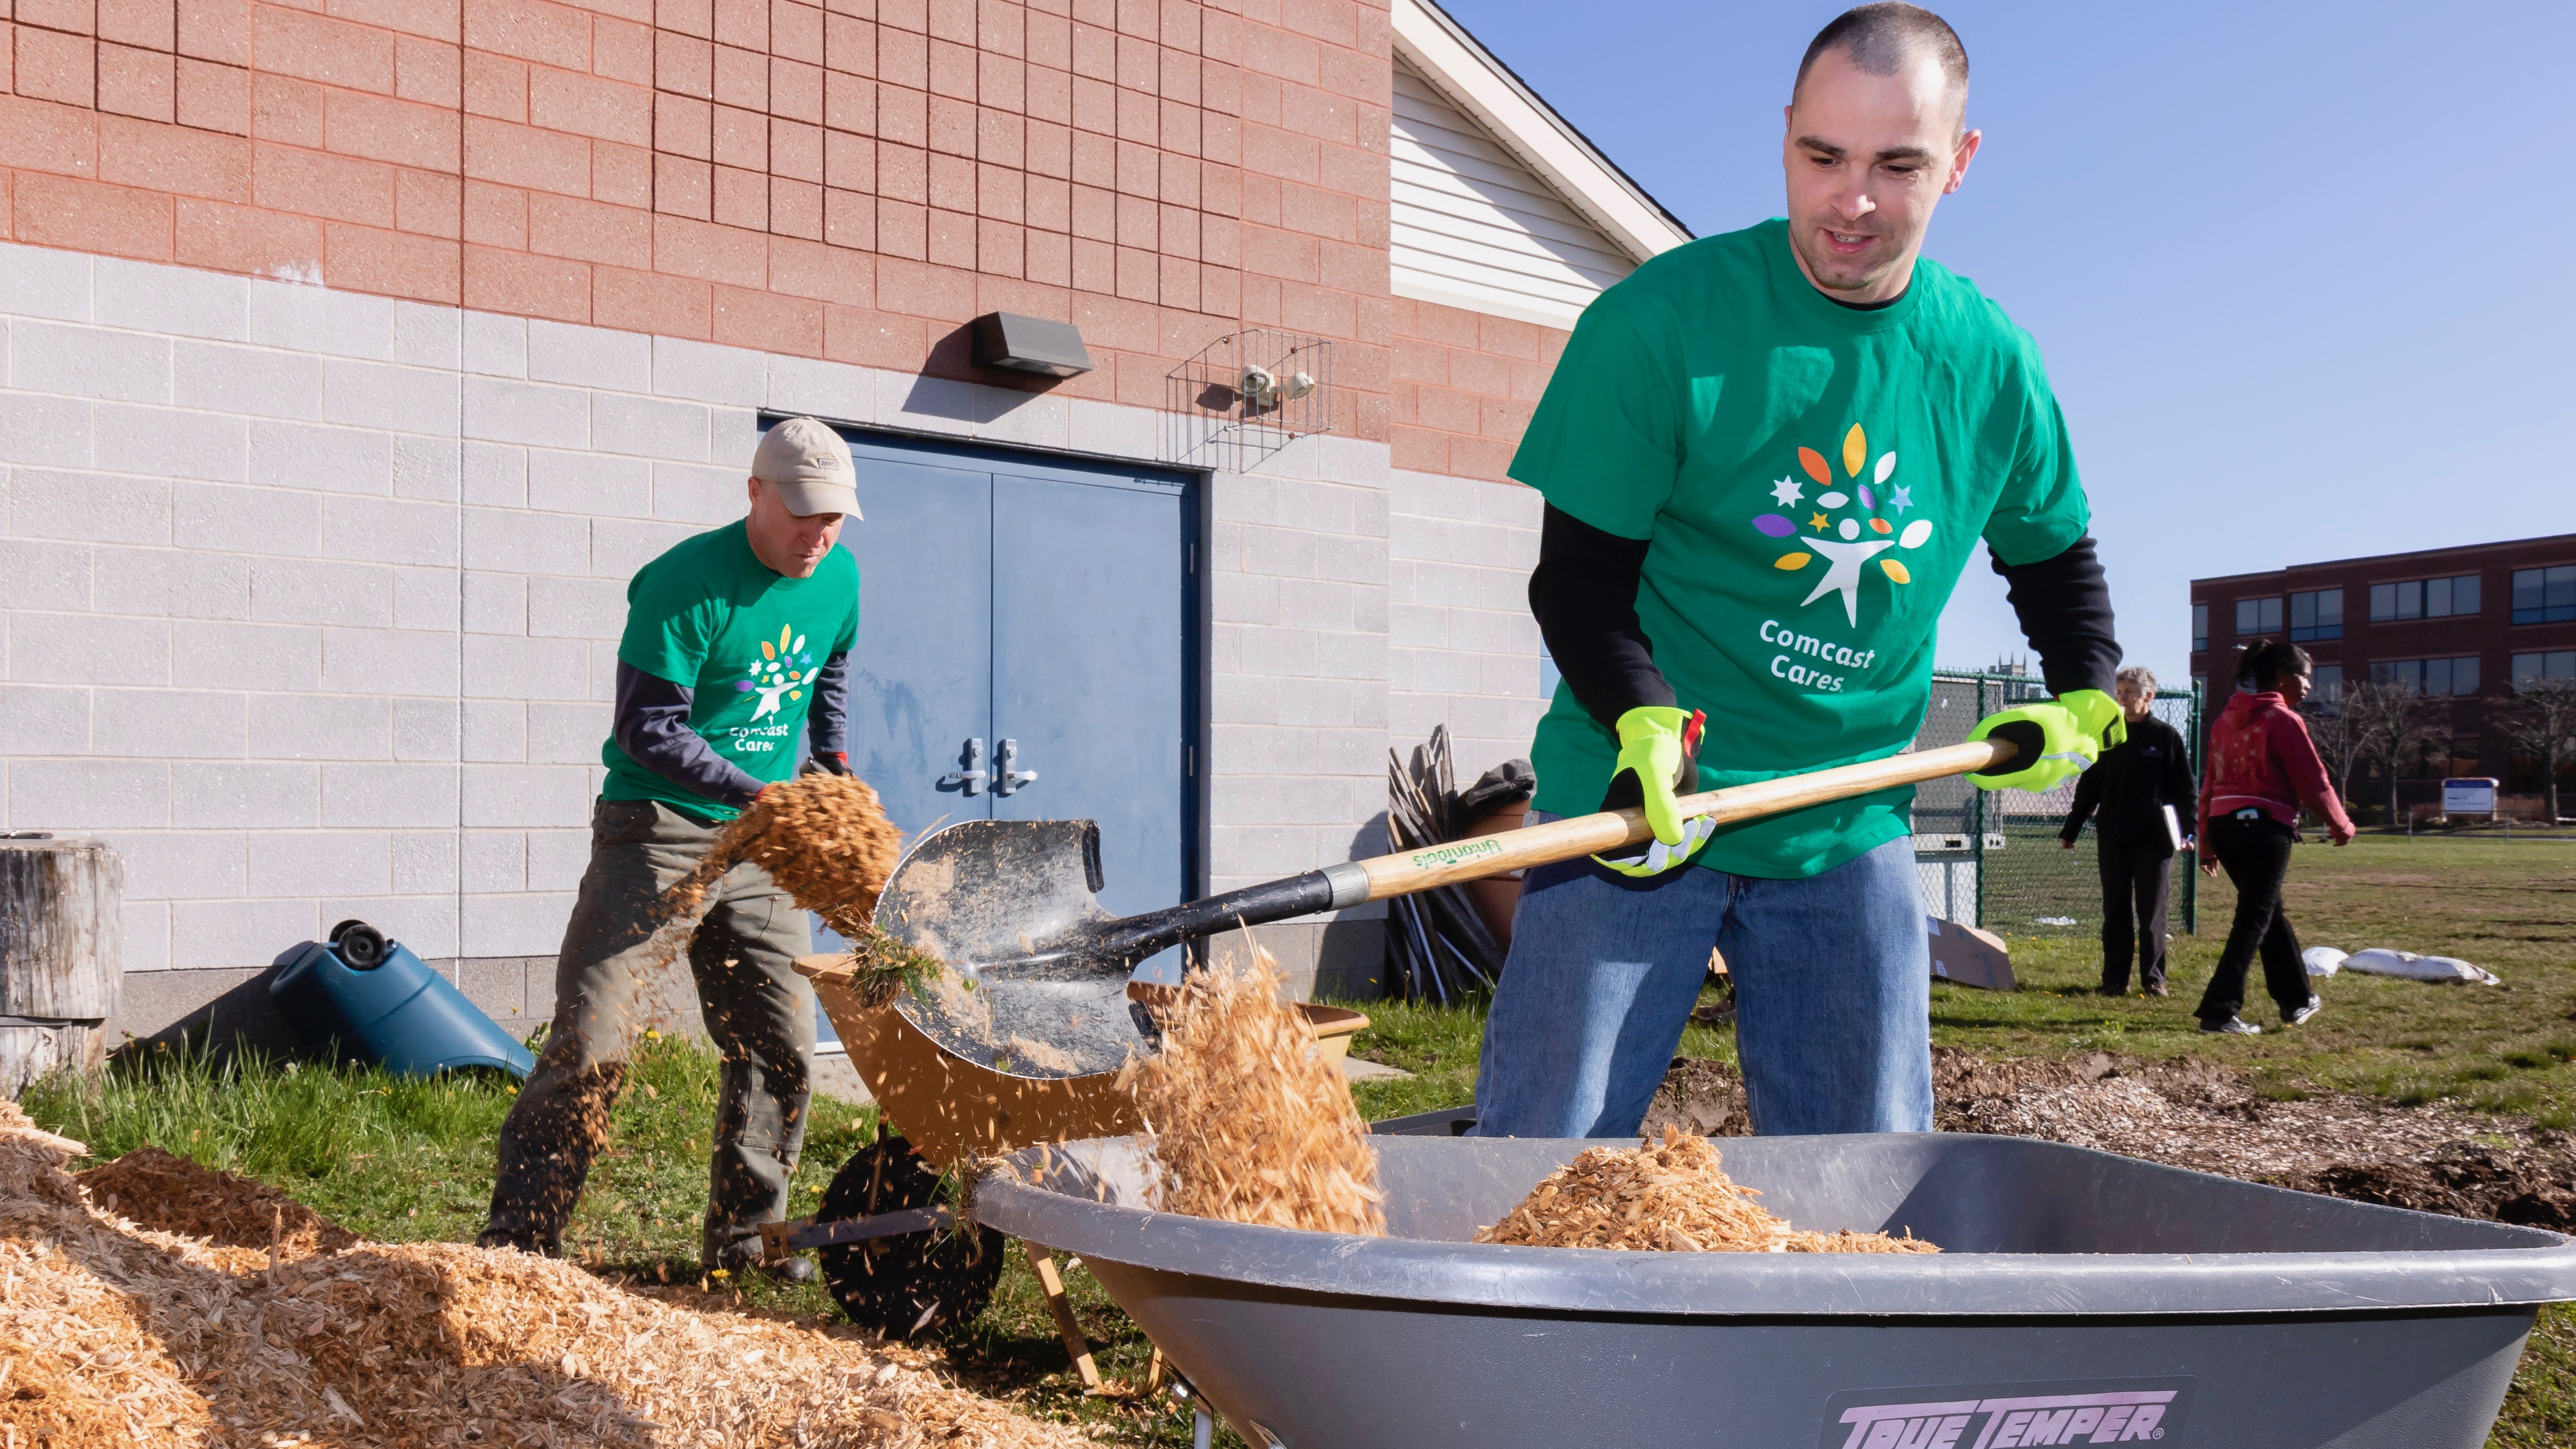 A Comcast Cares Day volunteer fills a wheelbarrow with mulch.